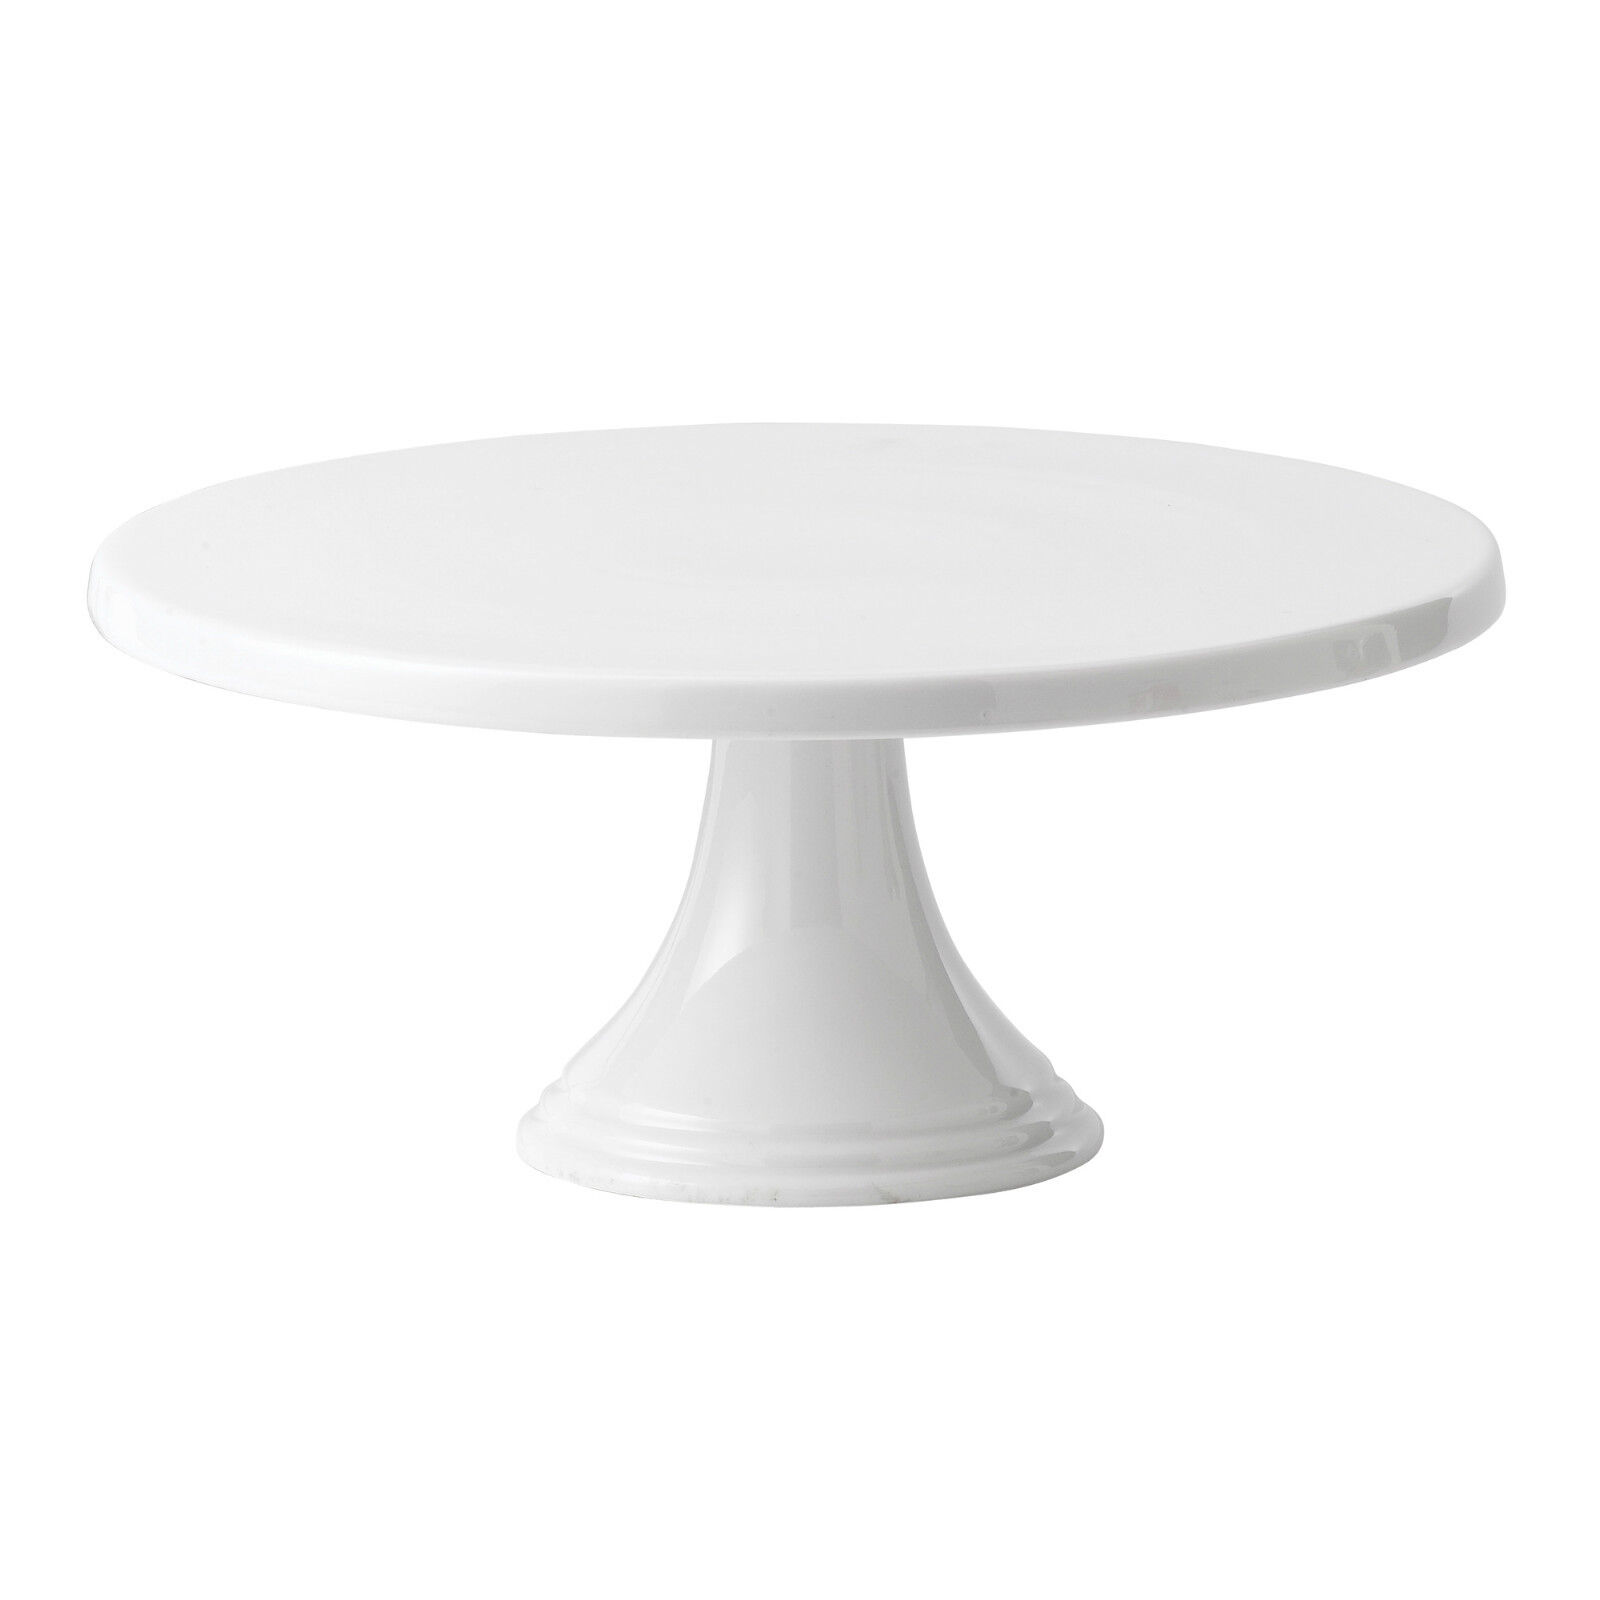 wedding cake stand the range white cake stand deals on 1001 blocks 25678